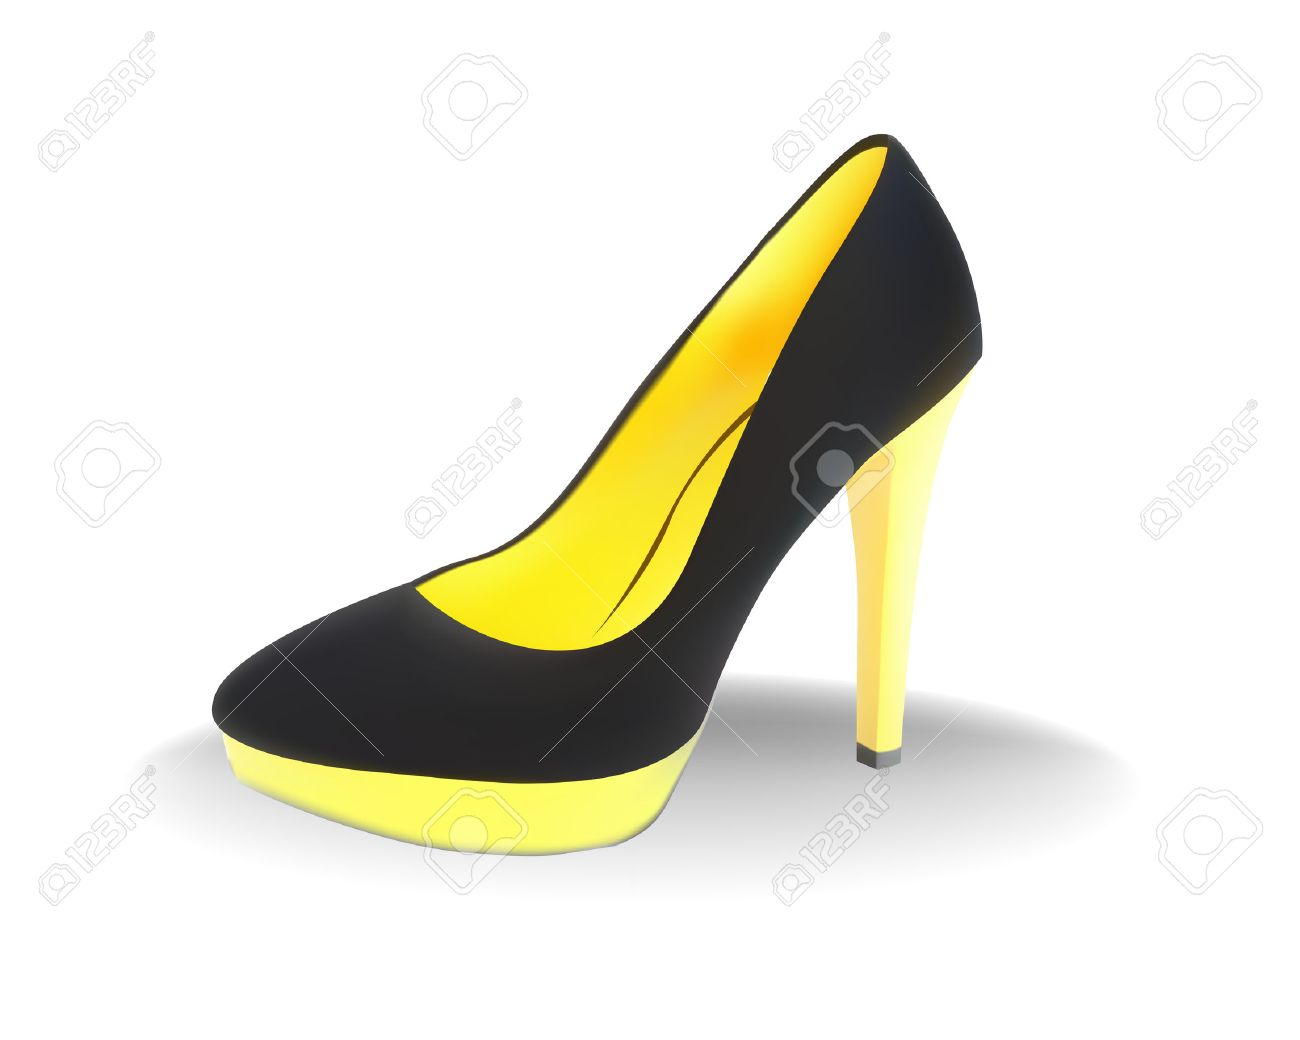 Black Female Shoes With A Yellow Heel On A White Background ...